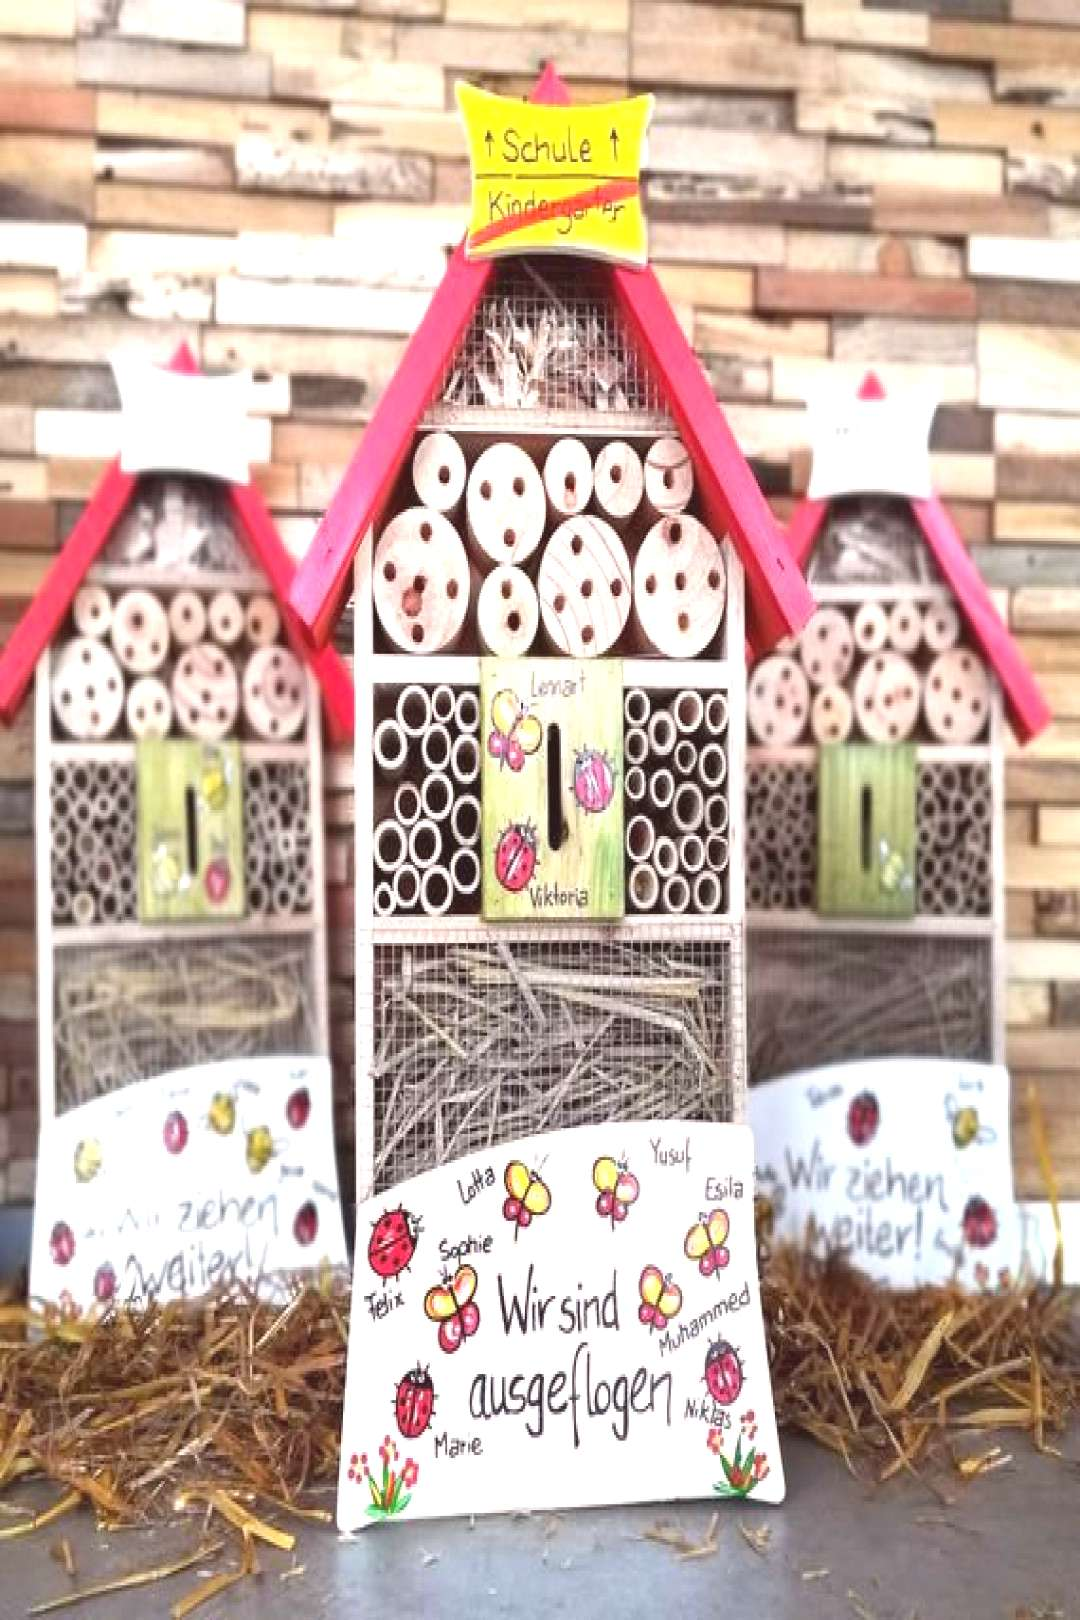 Nursery Farewell Gift I Farewell Gift Nursery I Farewell Educator I Insect Hotel, weatherproof, wit